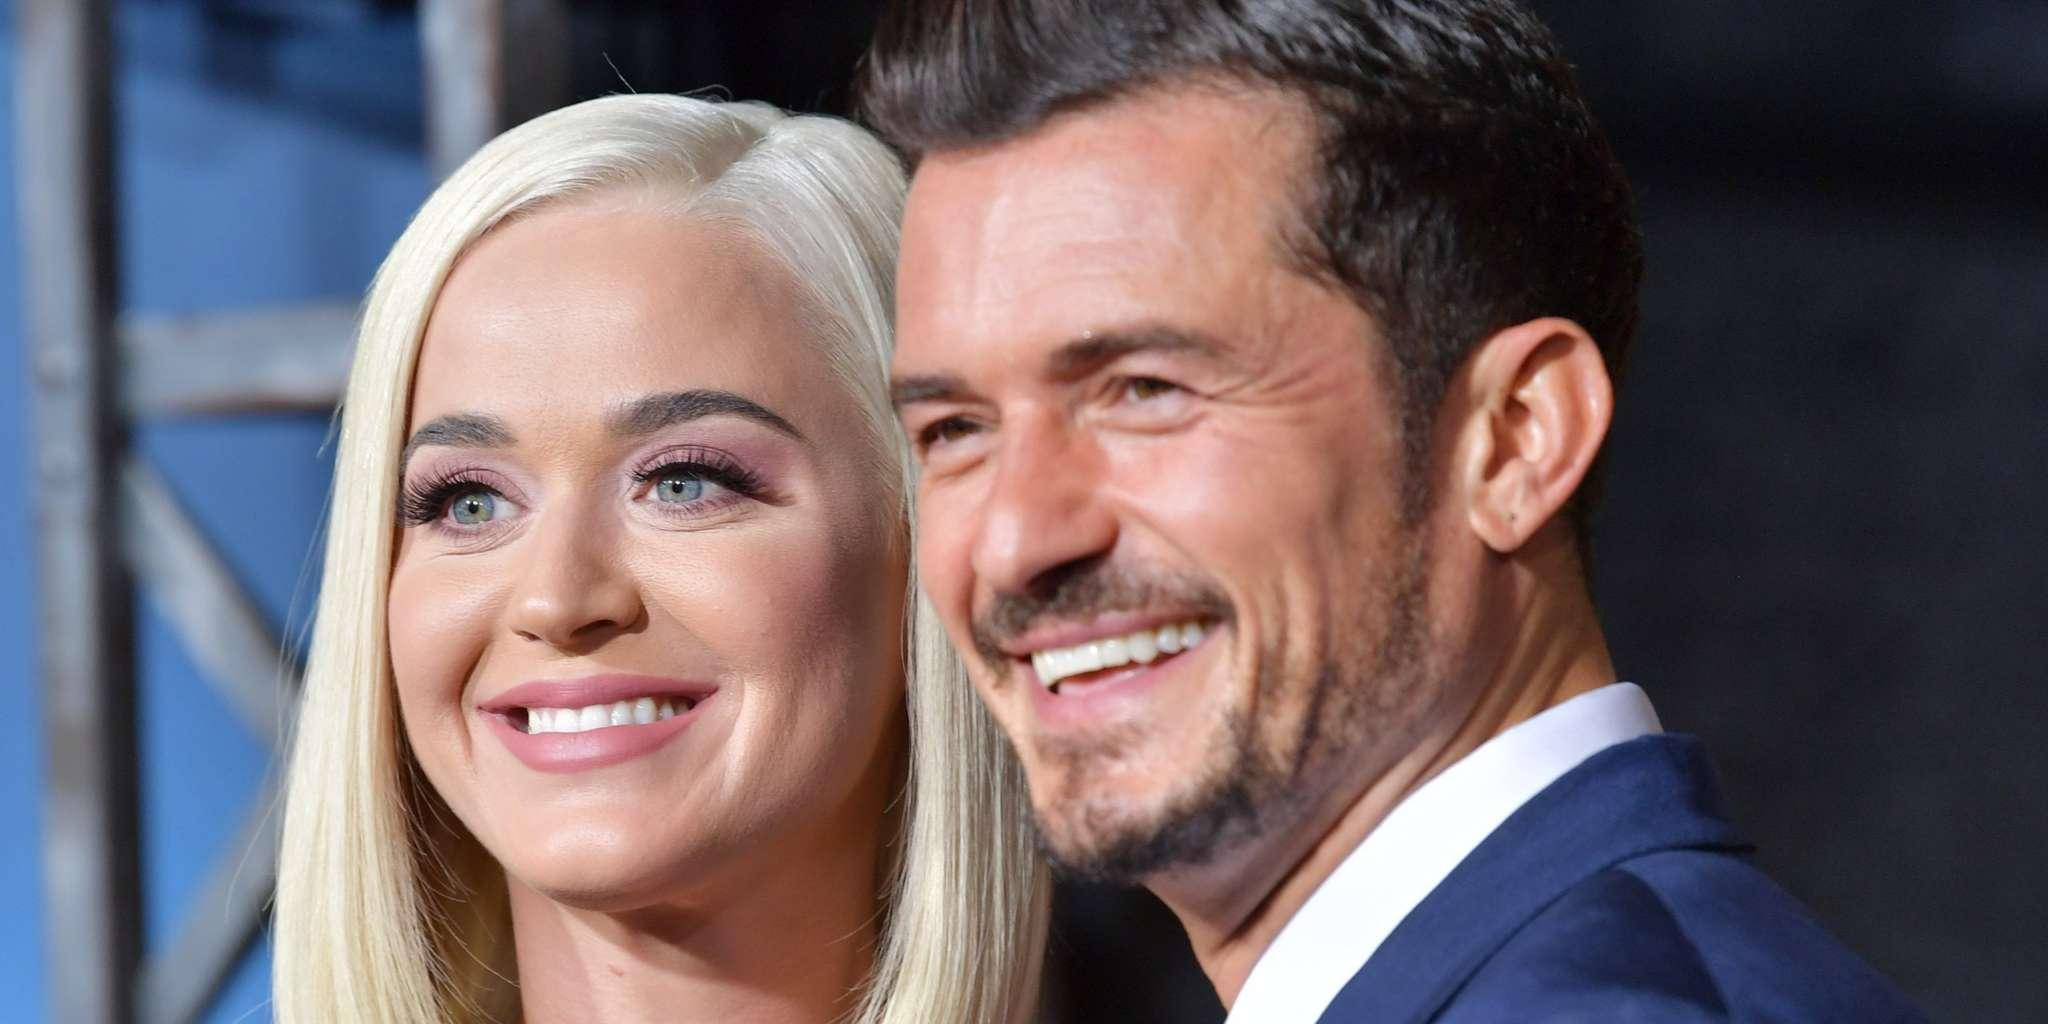 Katy Perry 'More In Love' With Fiance Orlando Bloom Now That They're Expecting - Here's Why!